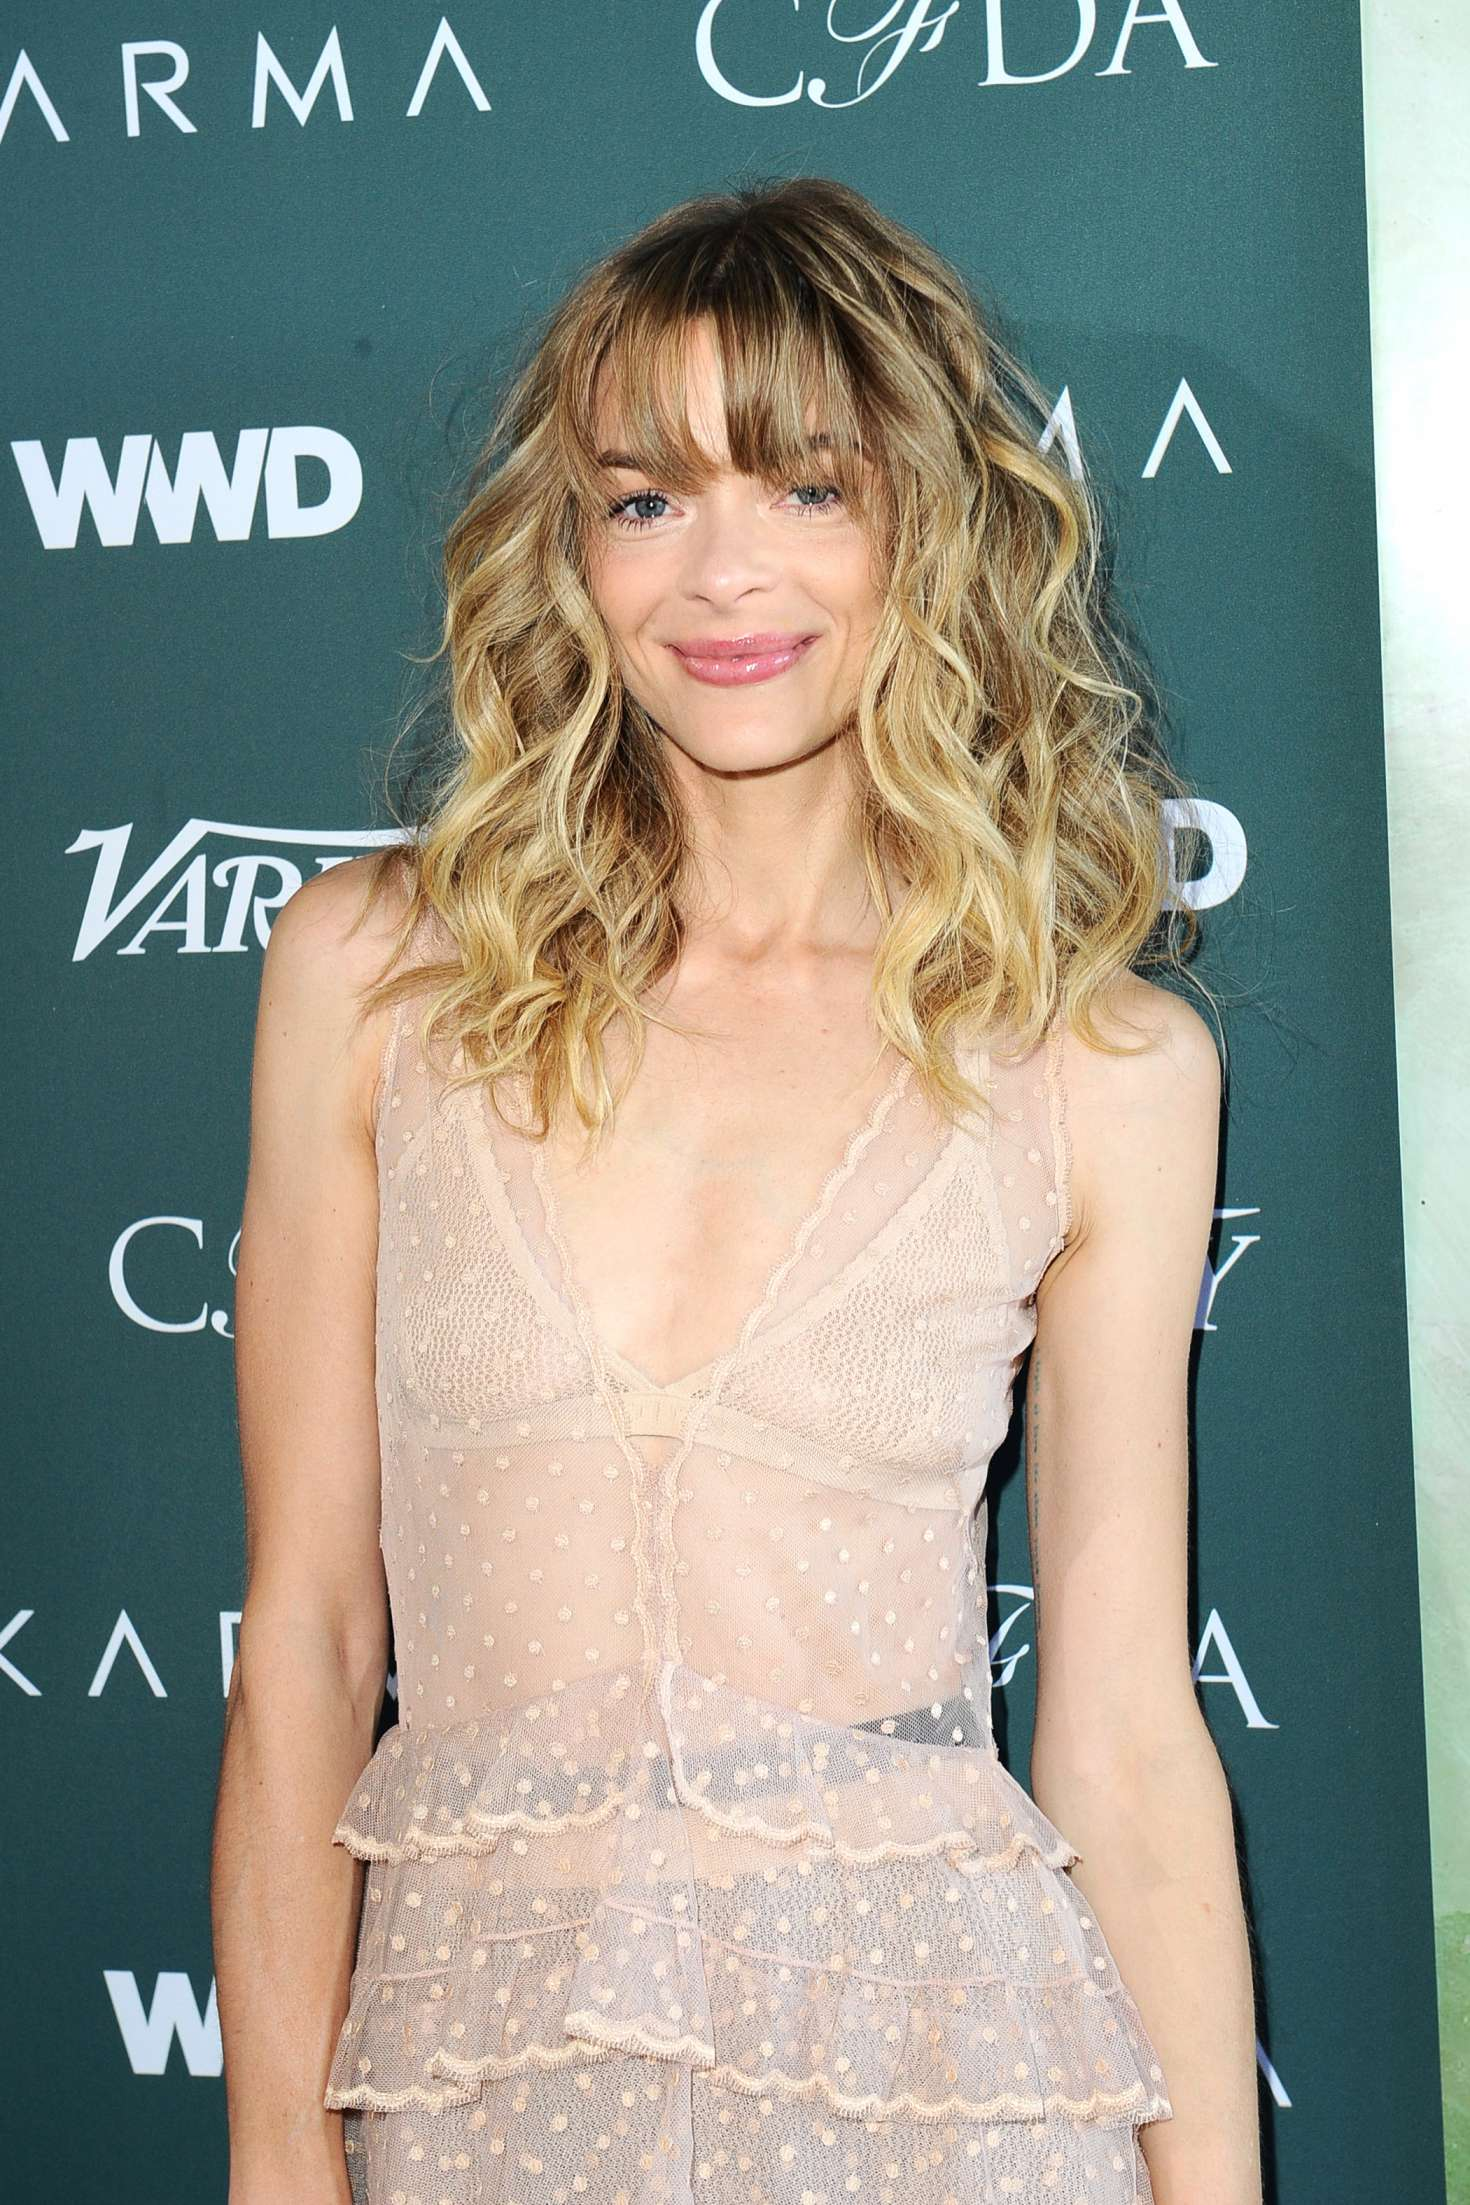 Jaime King Cfda Variety And Wwd Runway To Red Carpet In